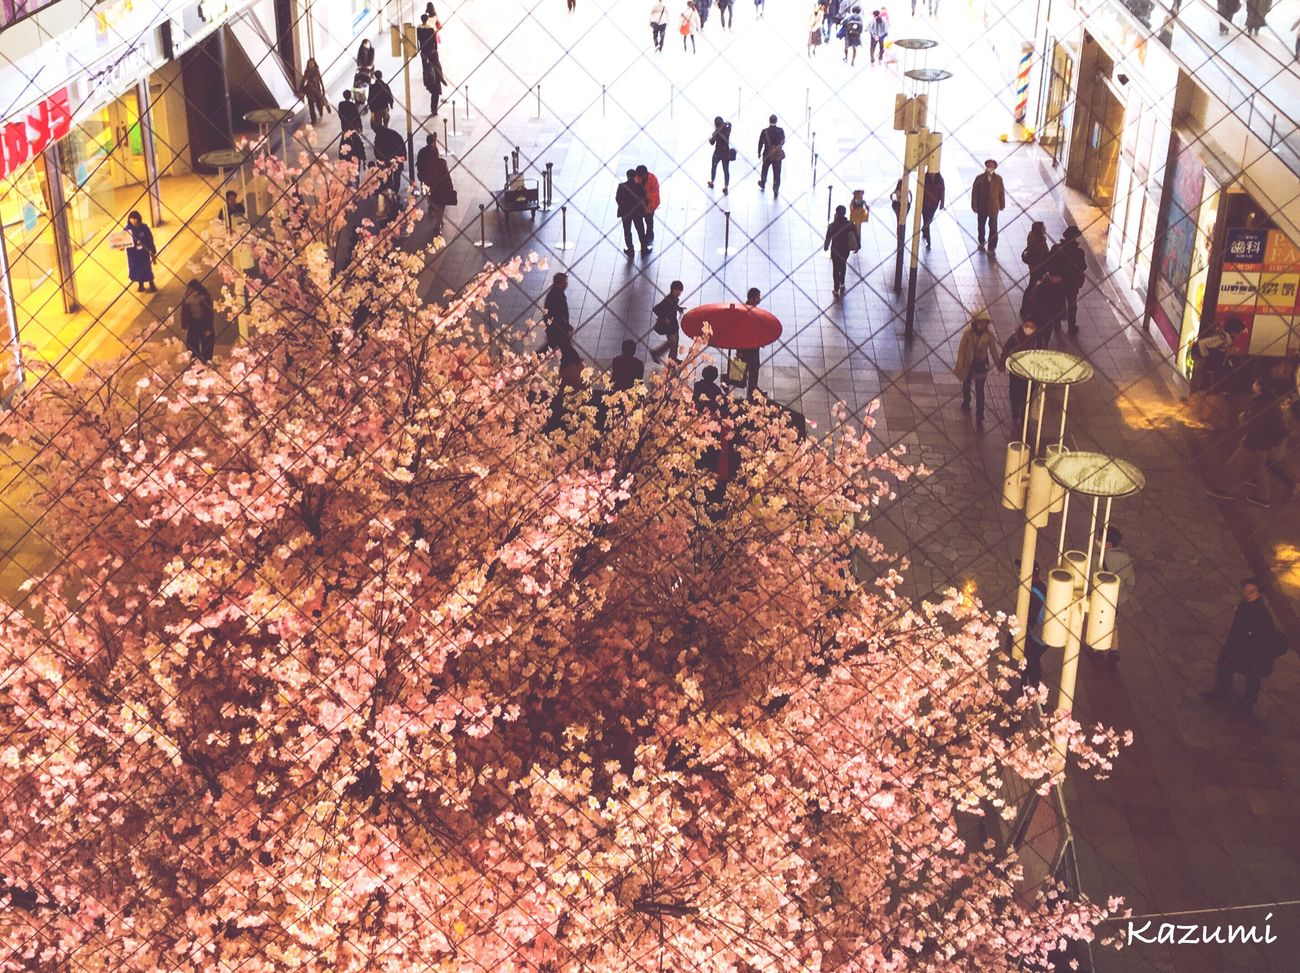 待ちきれないから、なんちゃって桜🌸 Real People Flower Large Group Of People Outdoors Men Women Day Nature Architecture Sky People Cherry Blossoms Cherry Blossoms 🌸🌸 Cherry Blossoms In Japan IPhone IPhoneography Iphoneonly Japan